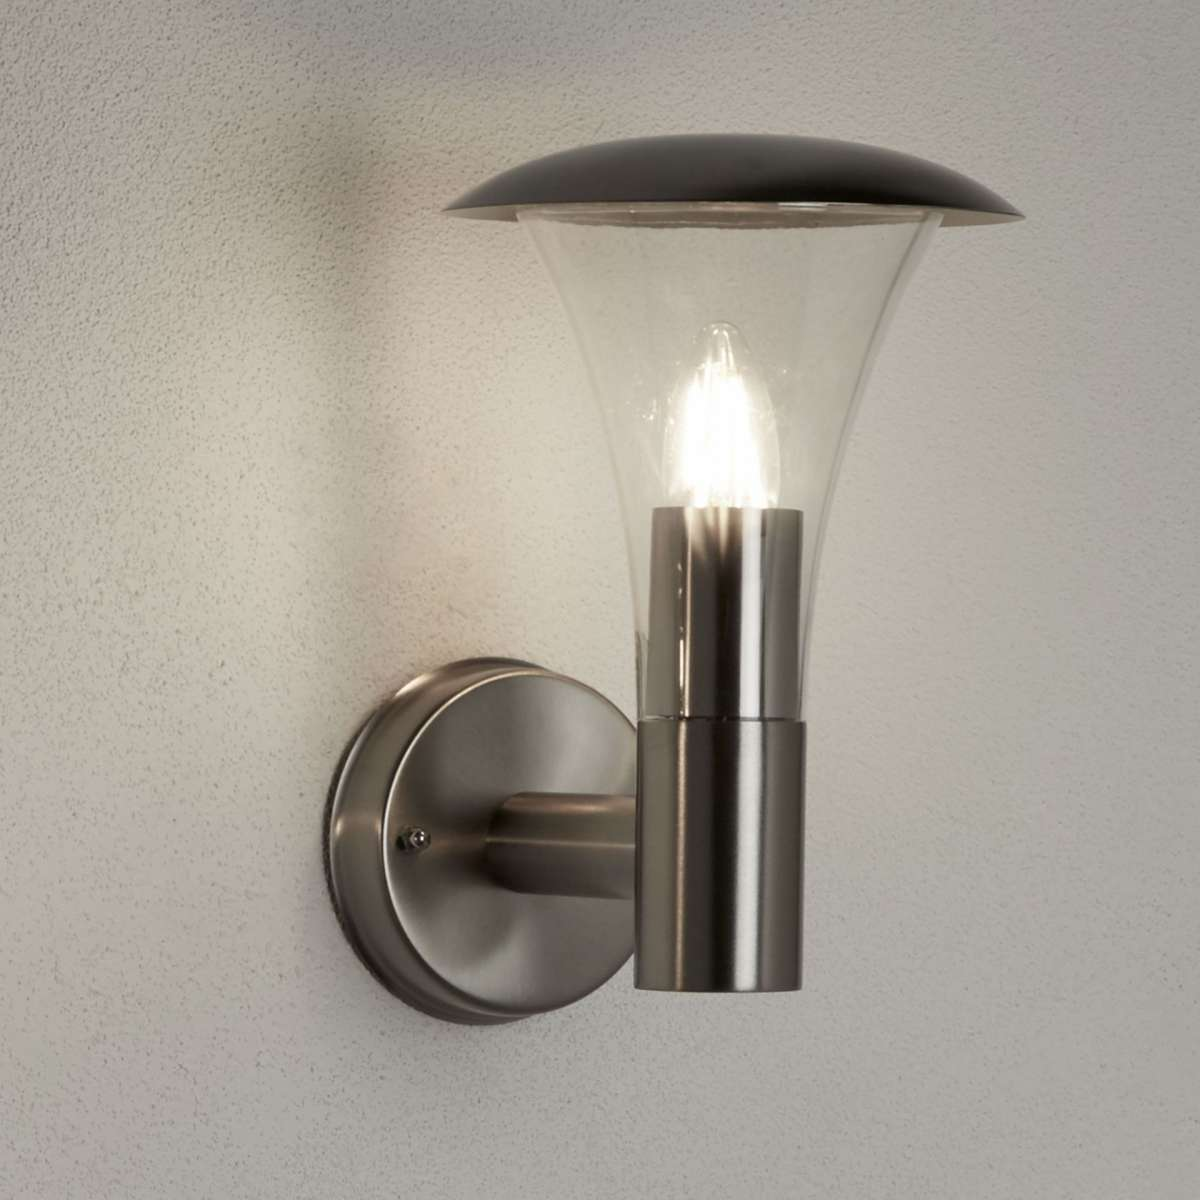 Searchlight 096 Strand Stainless Steel Outdoor Wall Light Polycarbonate Diffuser Jrlighting Co Uk